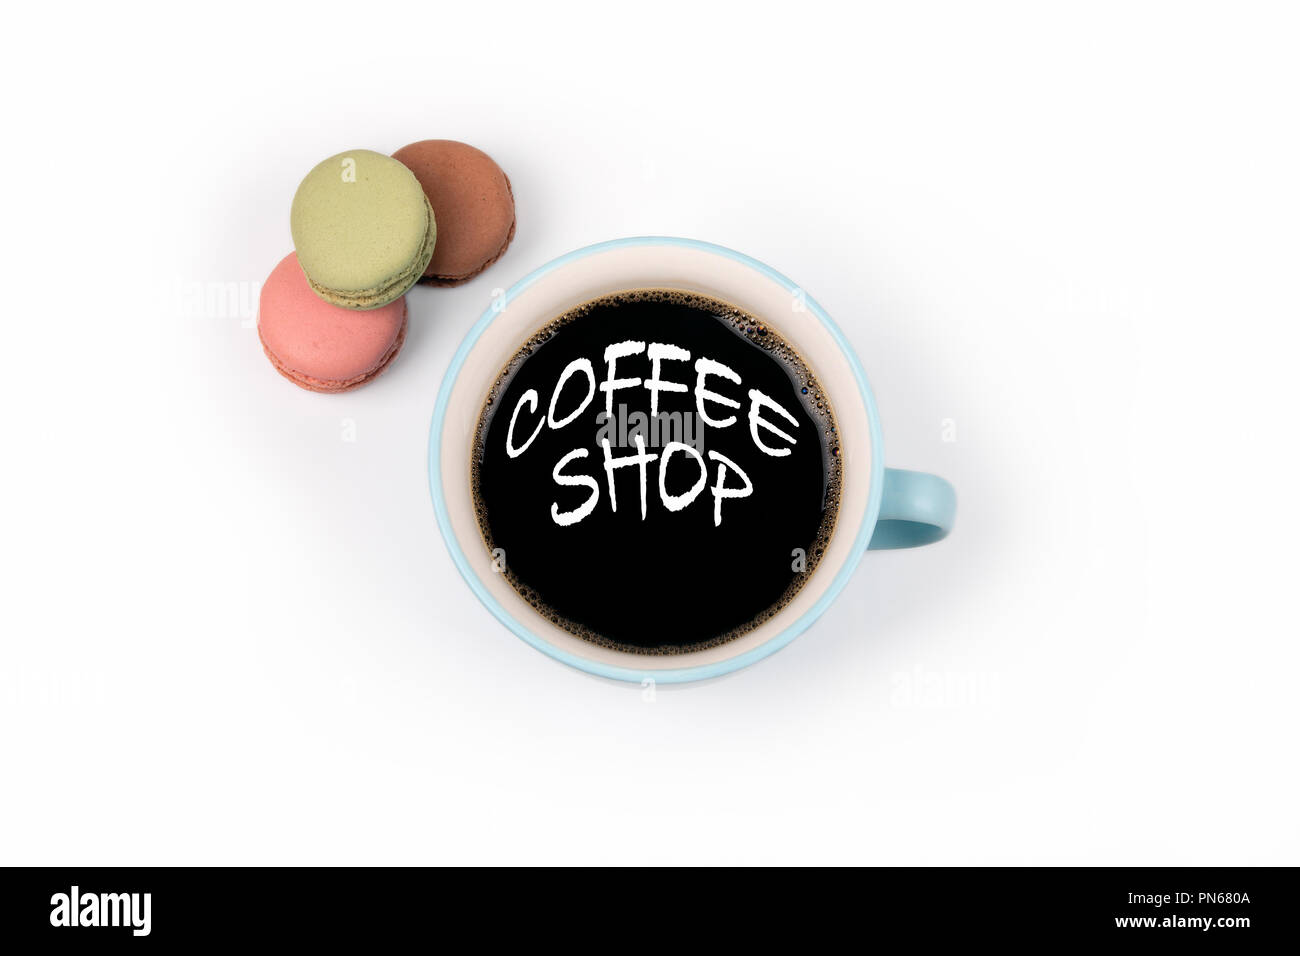 Where To Buy Nice Coffee Mugs Coffee Shop Coffee Mug And Macarons Biscuits Stock Photo